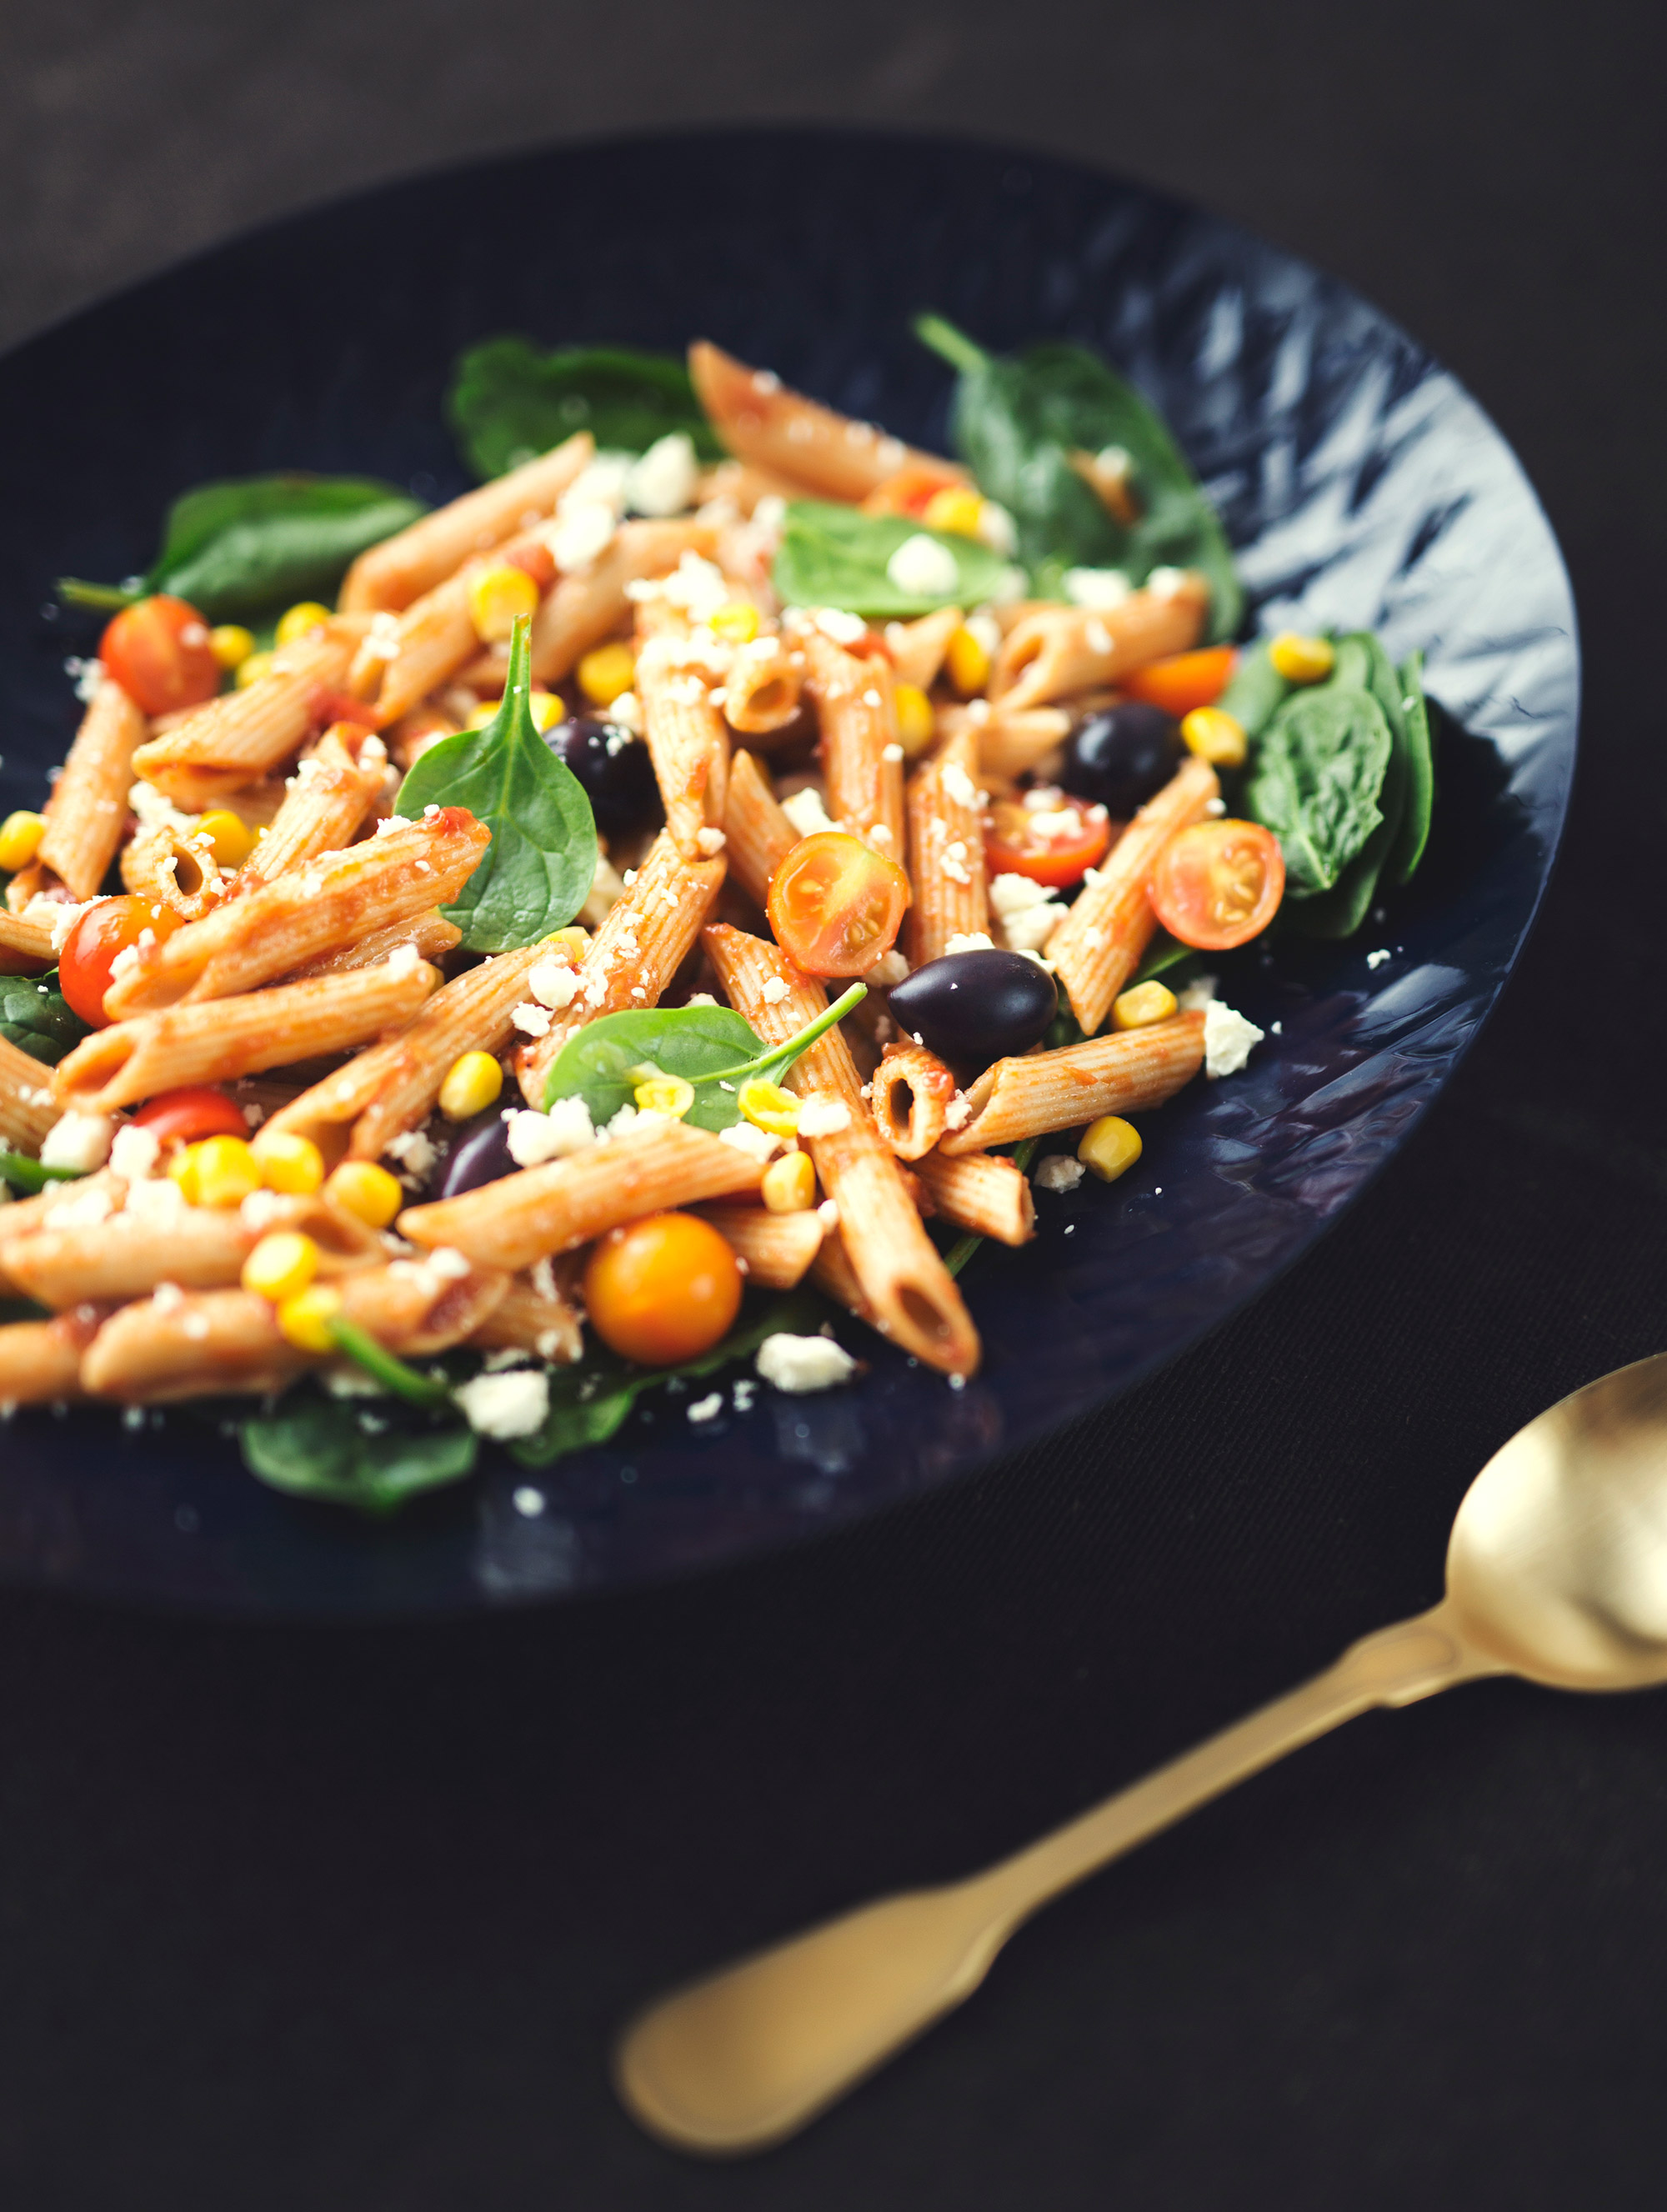 Tomato & Balsamic Wholemeal Pasta Salad